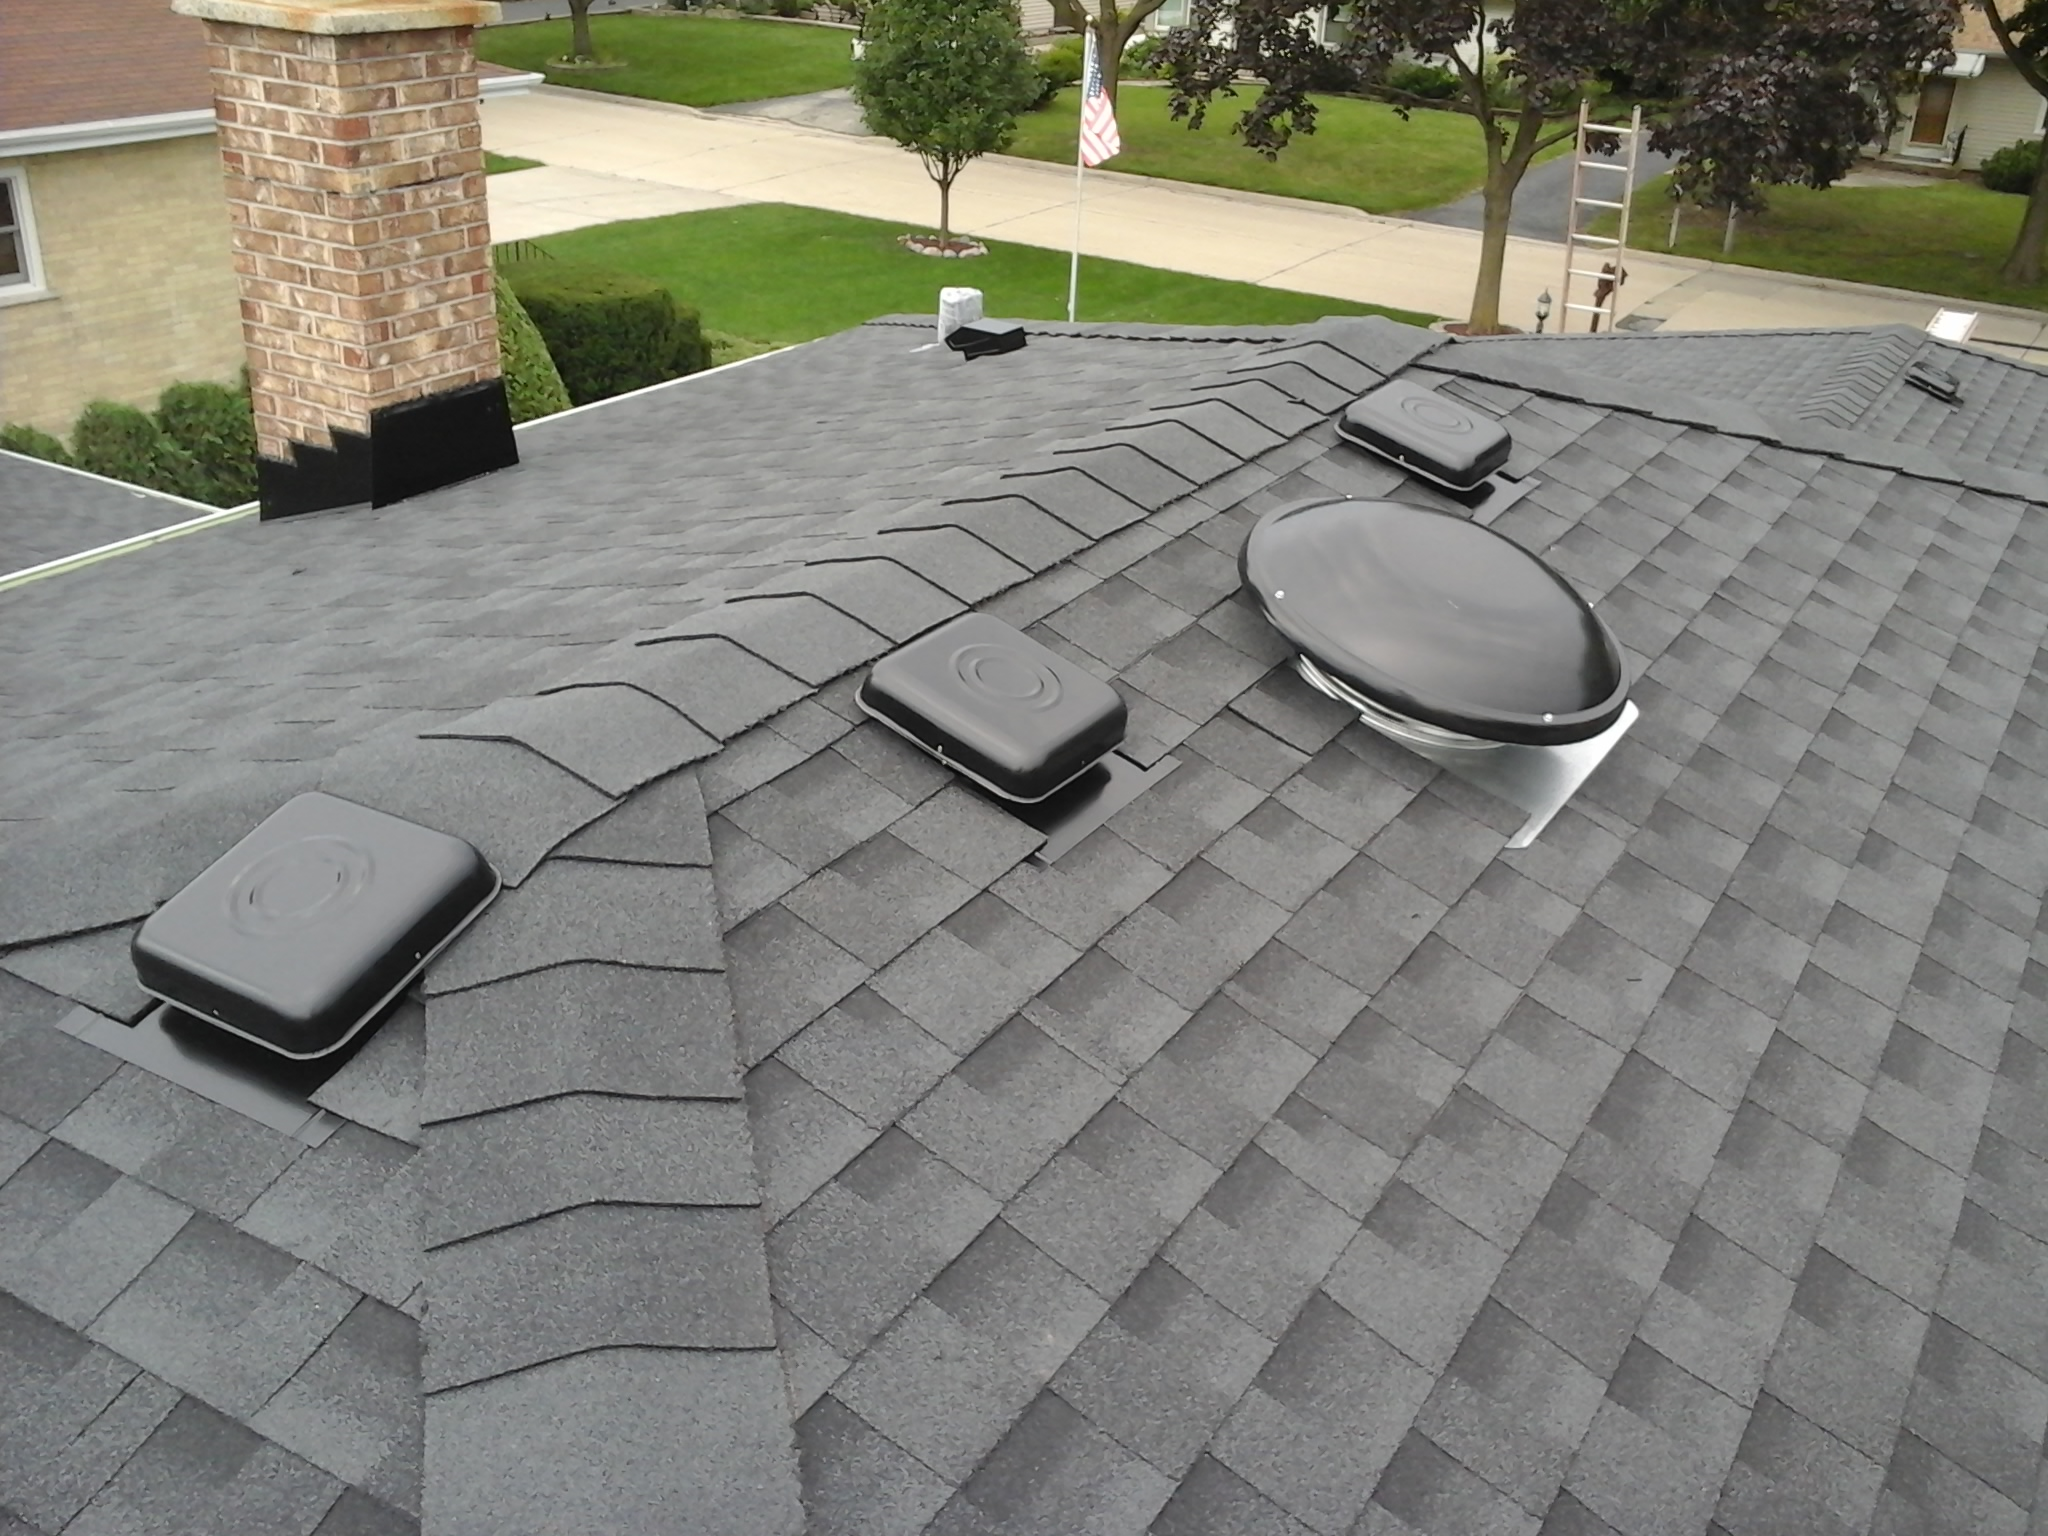 Feze Roofing - After Photo - Project Location: Elmhurst, IL